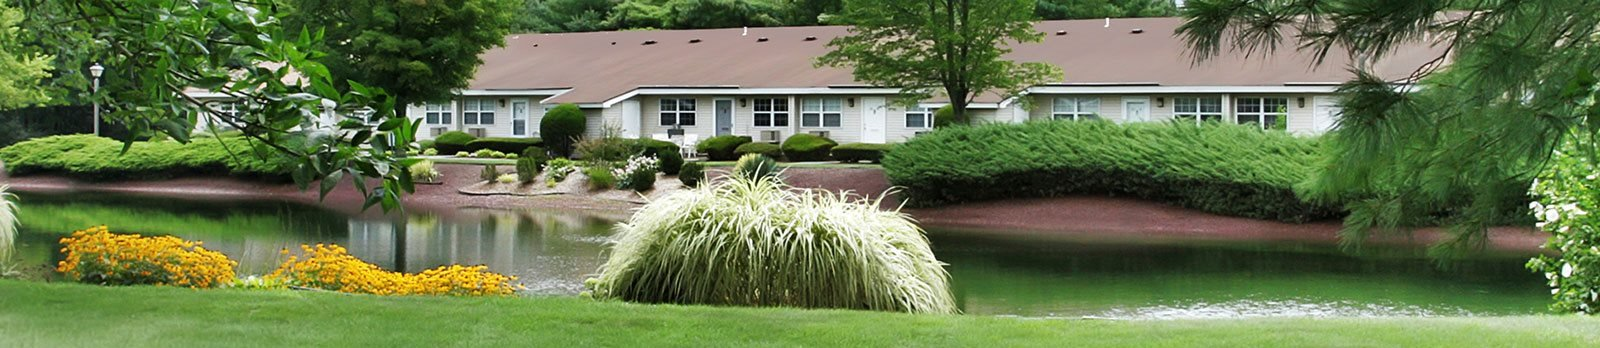 Lush Landscaping at Pine Hills South, New York, 11955